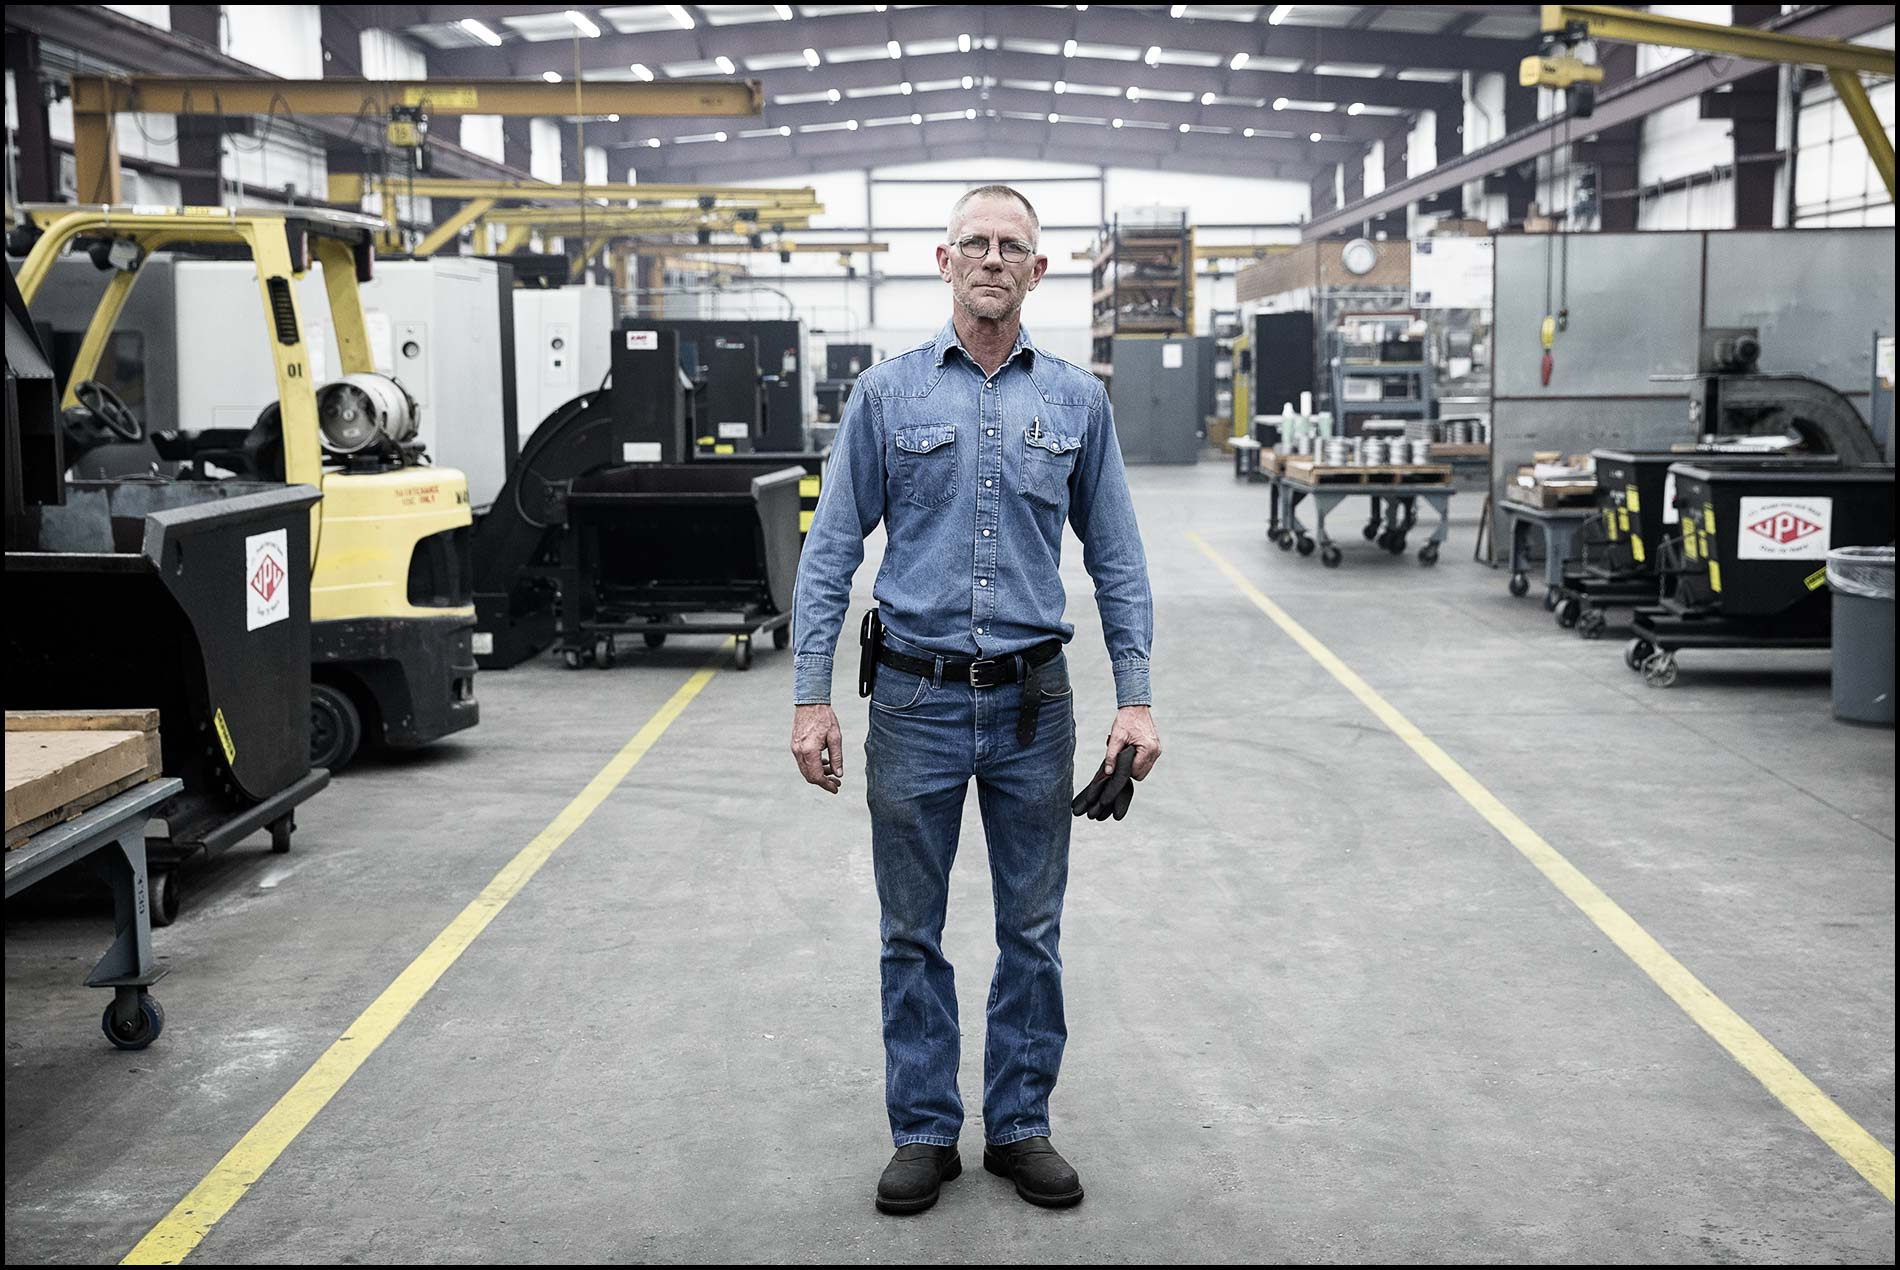 A portrait of a machinist standing in the center of a large machine shop.